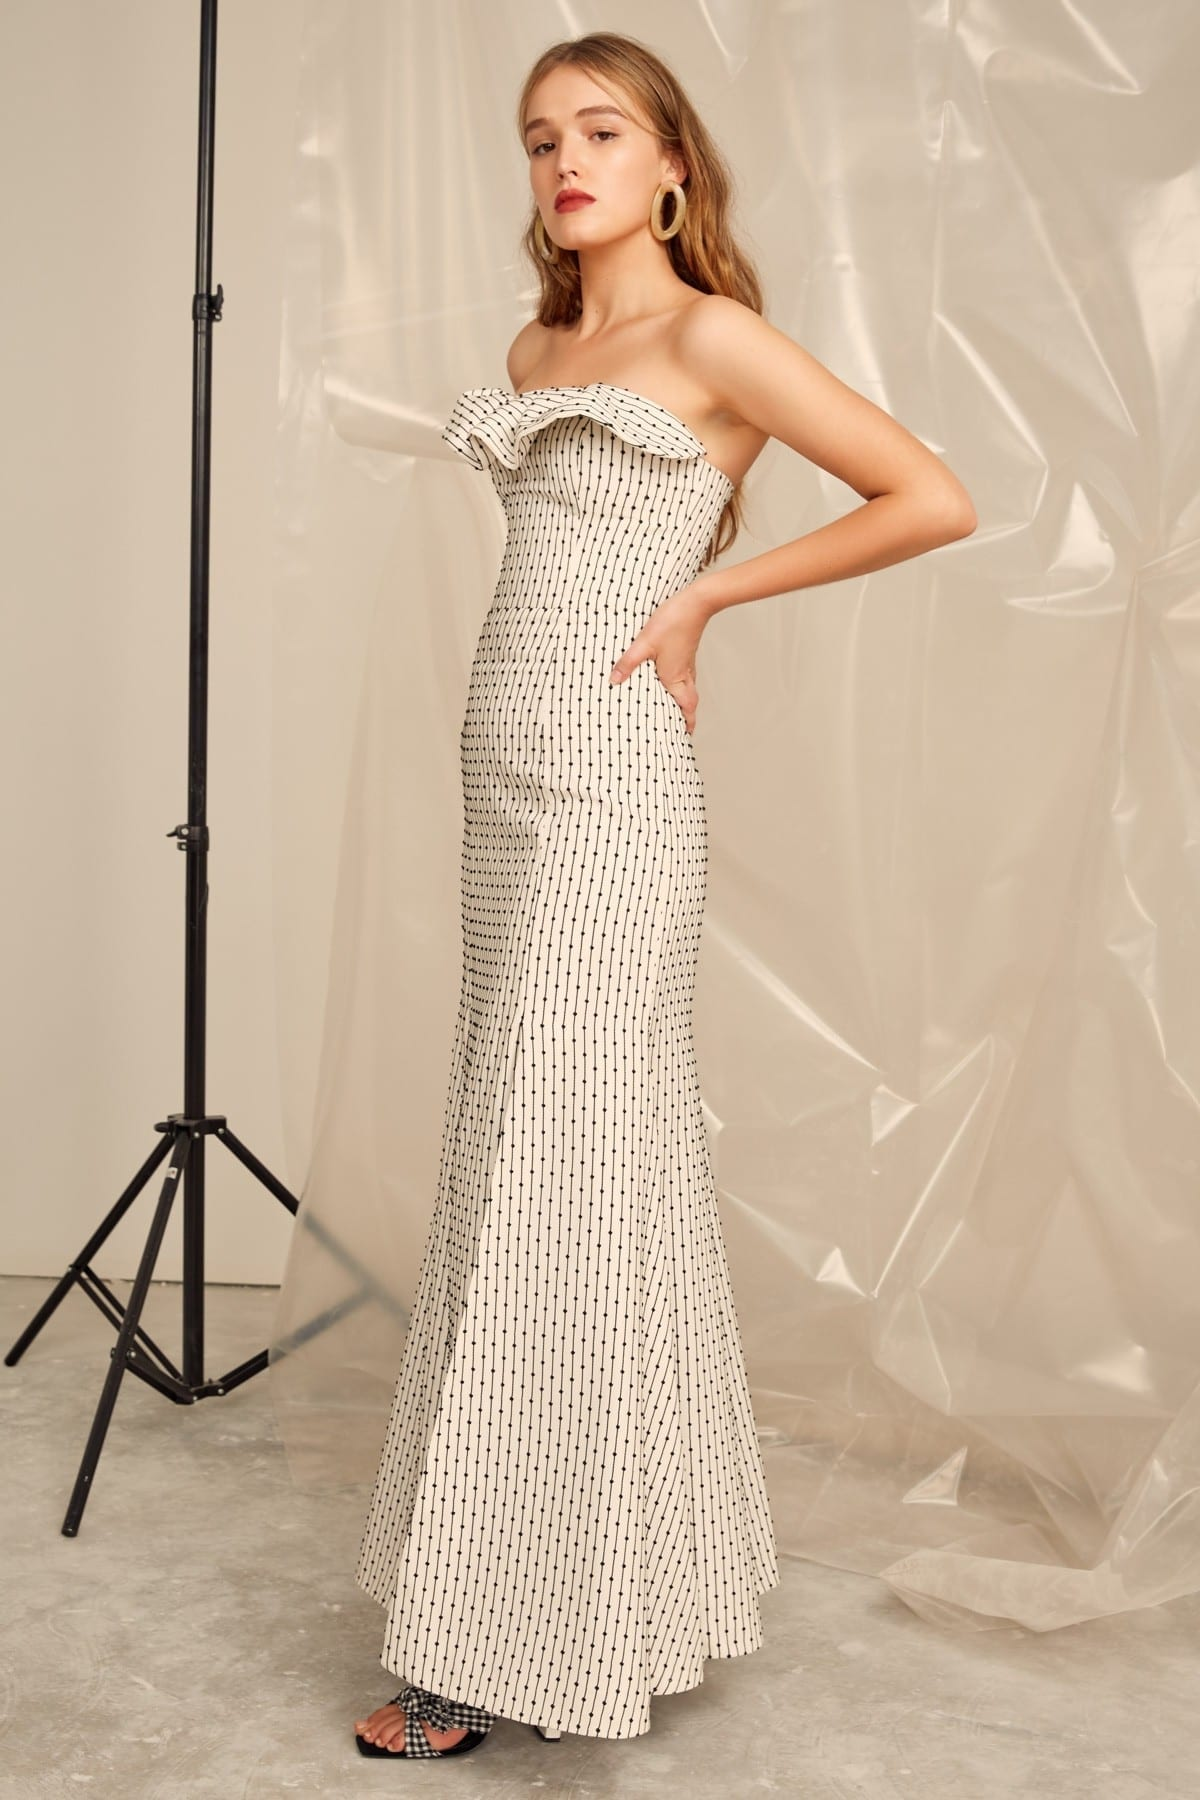 CMEO COLLECTIVE Even Love Ivory Gown 3